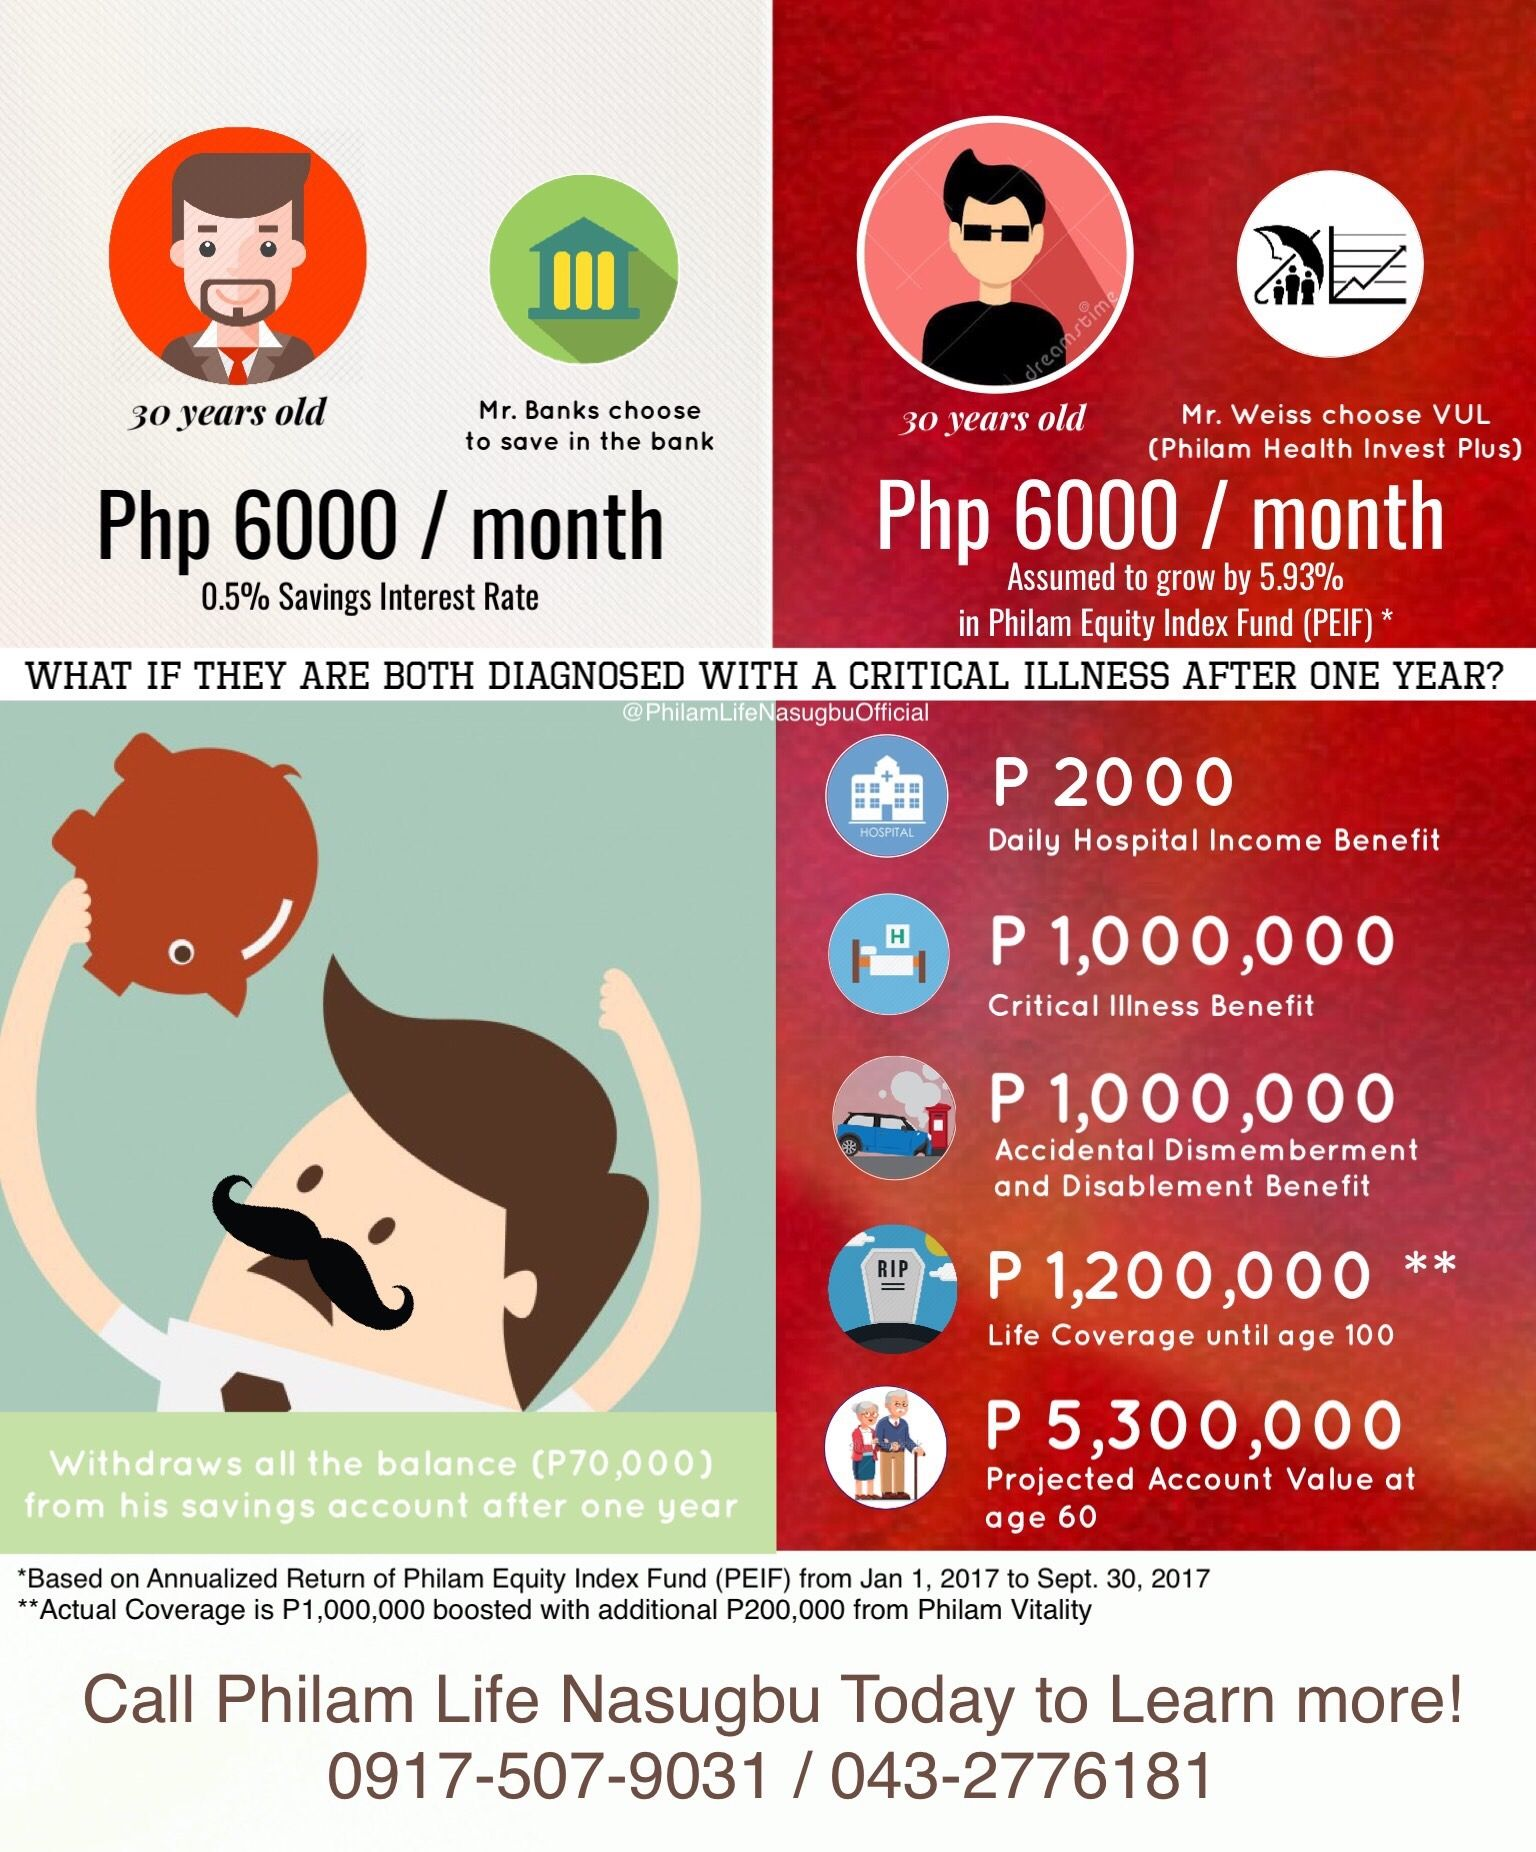 Learn more about Philam Life Health Invest Plus. Call